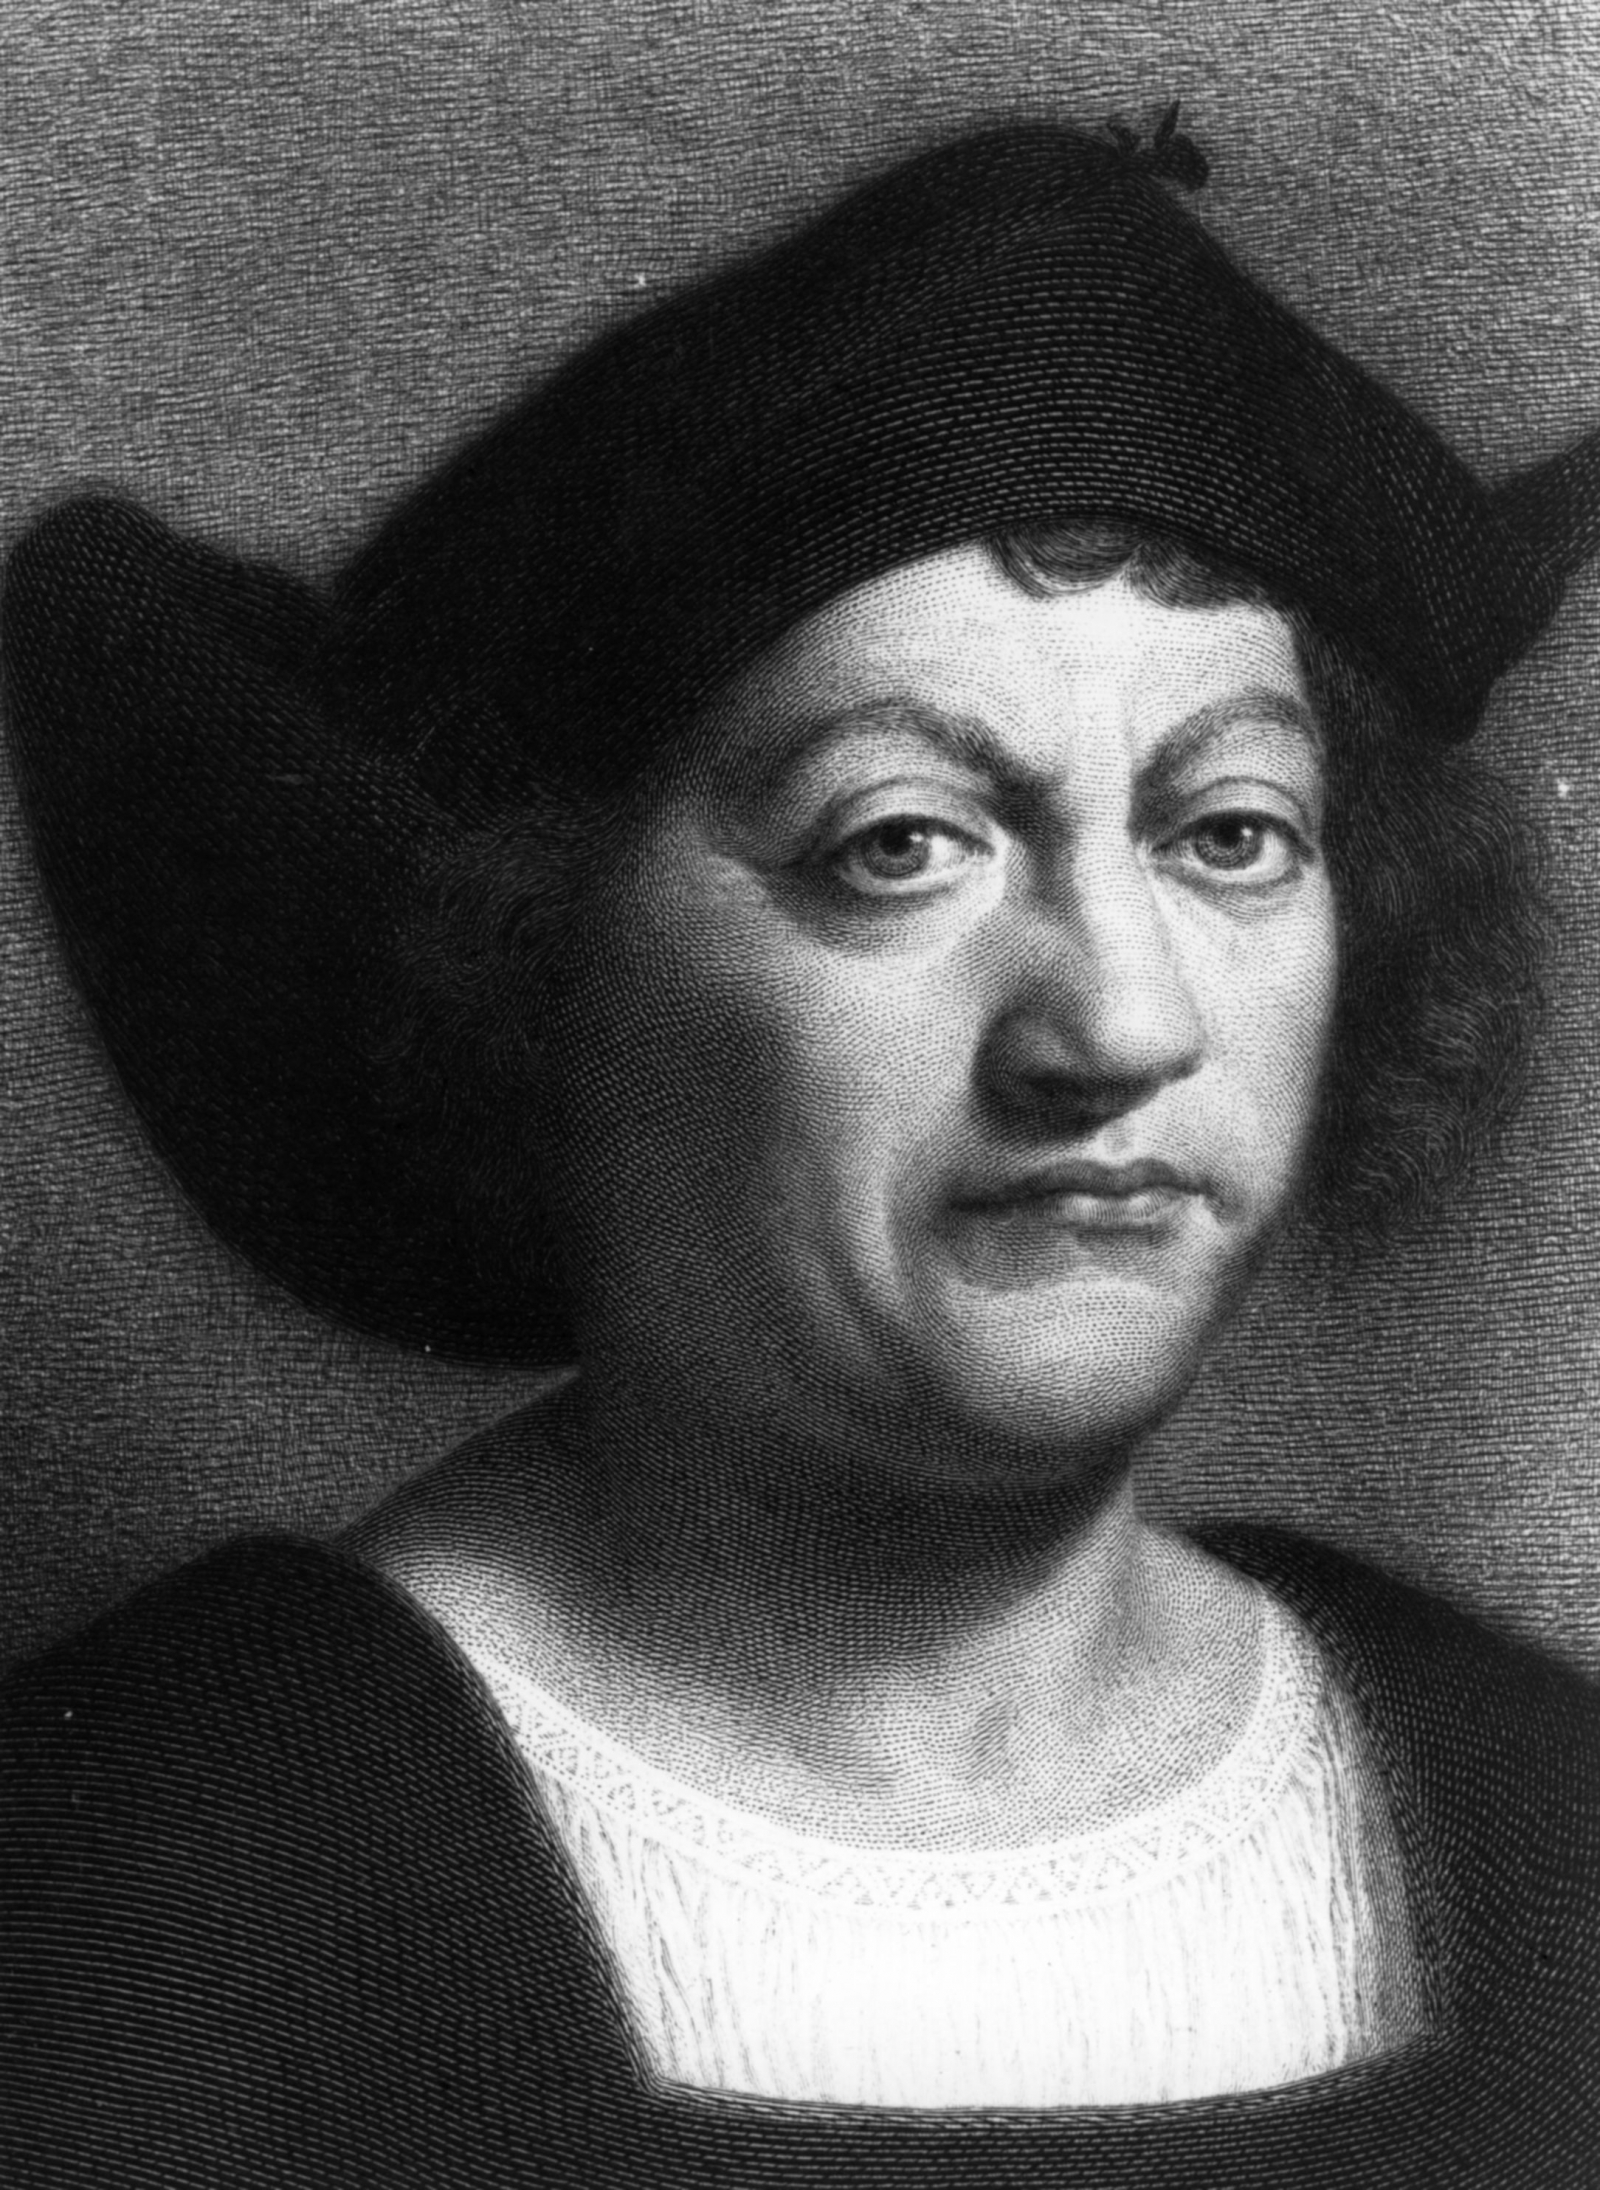 christopher columbus or not christopher columbus Christopher columbus is not a hero worthy of a national holiday, nor any parades he is not a hero by fifteenth-century standards, nor twenty-first century standards columbus was incompetent and.